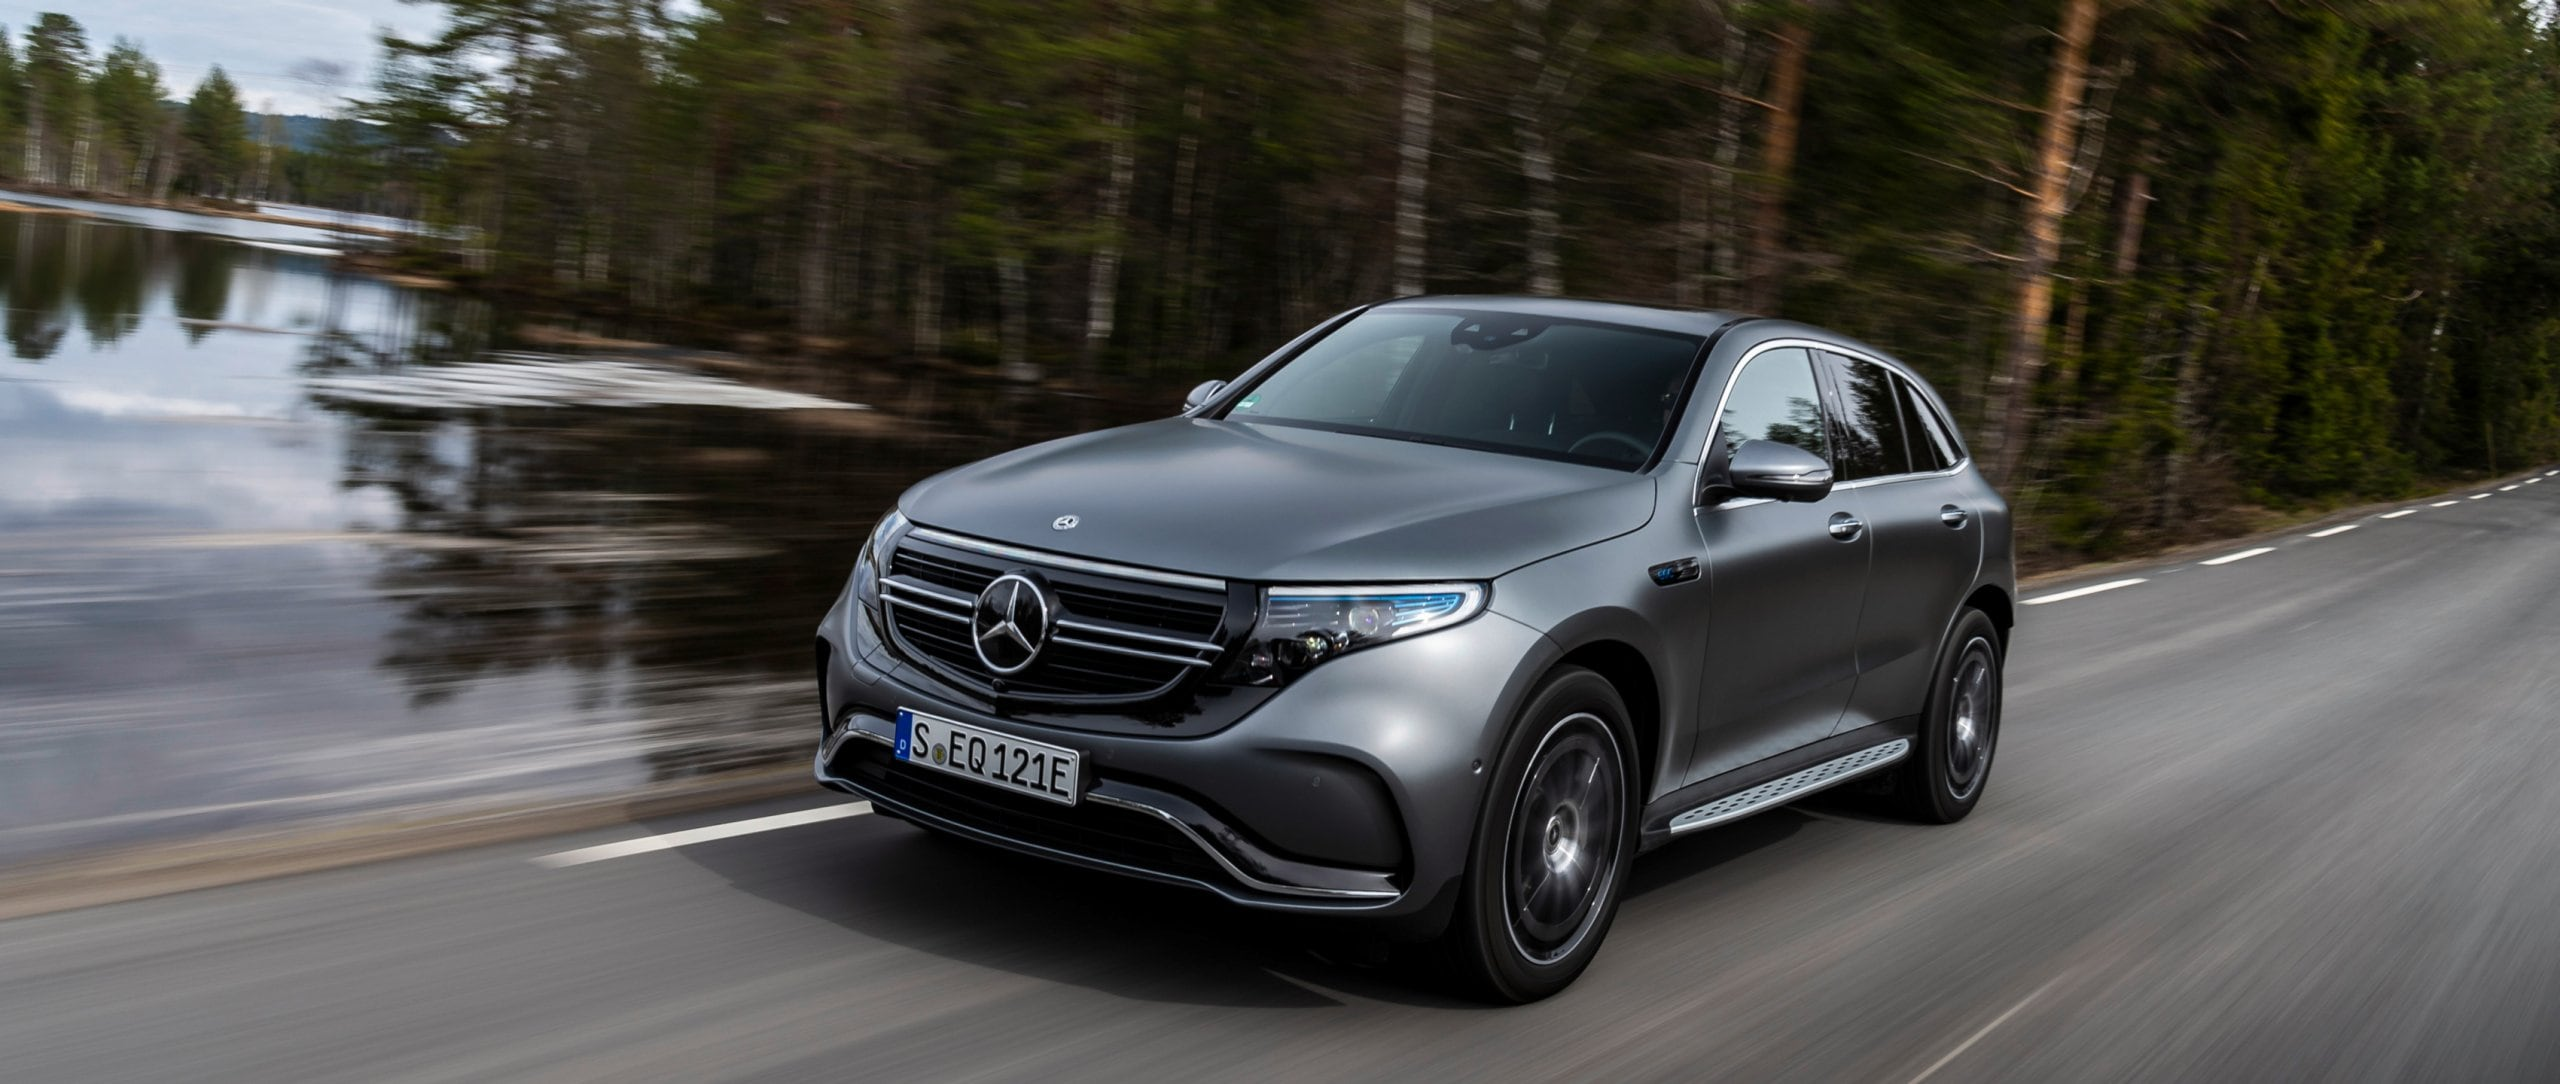 The new 2019 Mercedes-Benz EQC 400 4MATIC (N 293) AMG Line in designo selenite grey magno on a country road near Oslo, Norway.